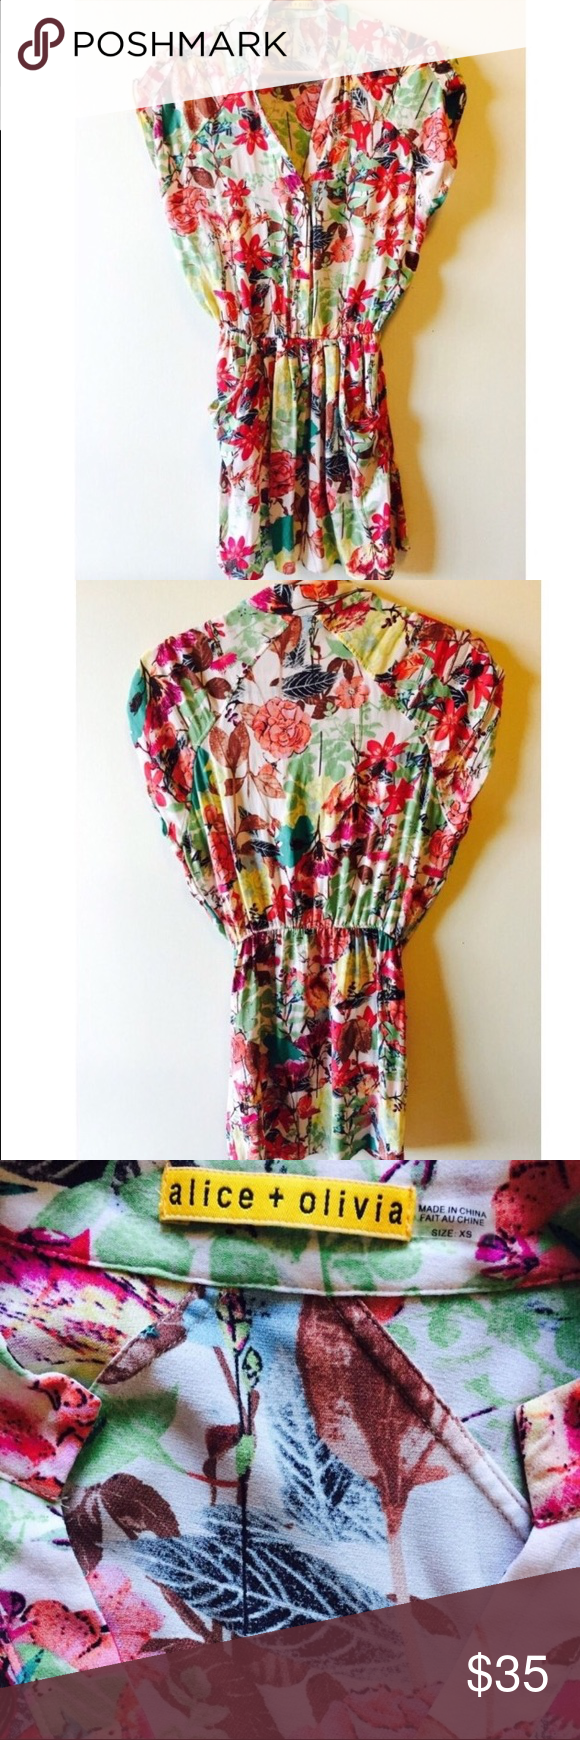 Alice + Olivia Tunic Shirt, xs Cute cap sleeve top with bright floral pattern. Could be worn as a dress on a shorter gal 👌🏼 Alice + Olivia Tops Tunics